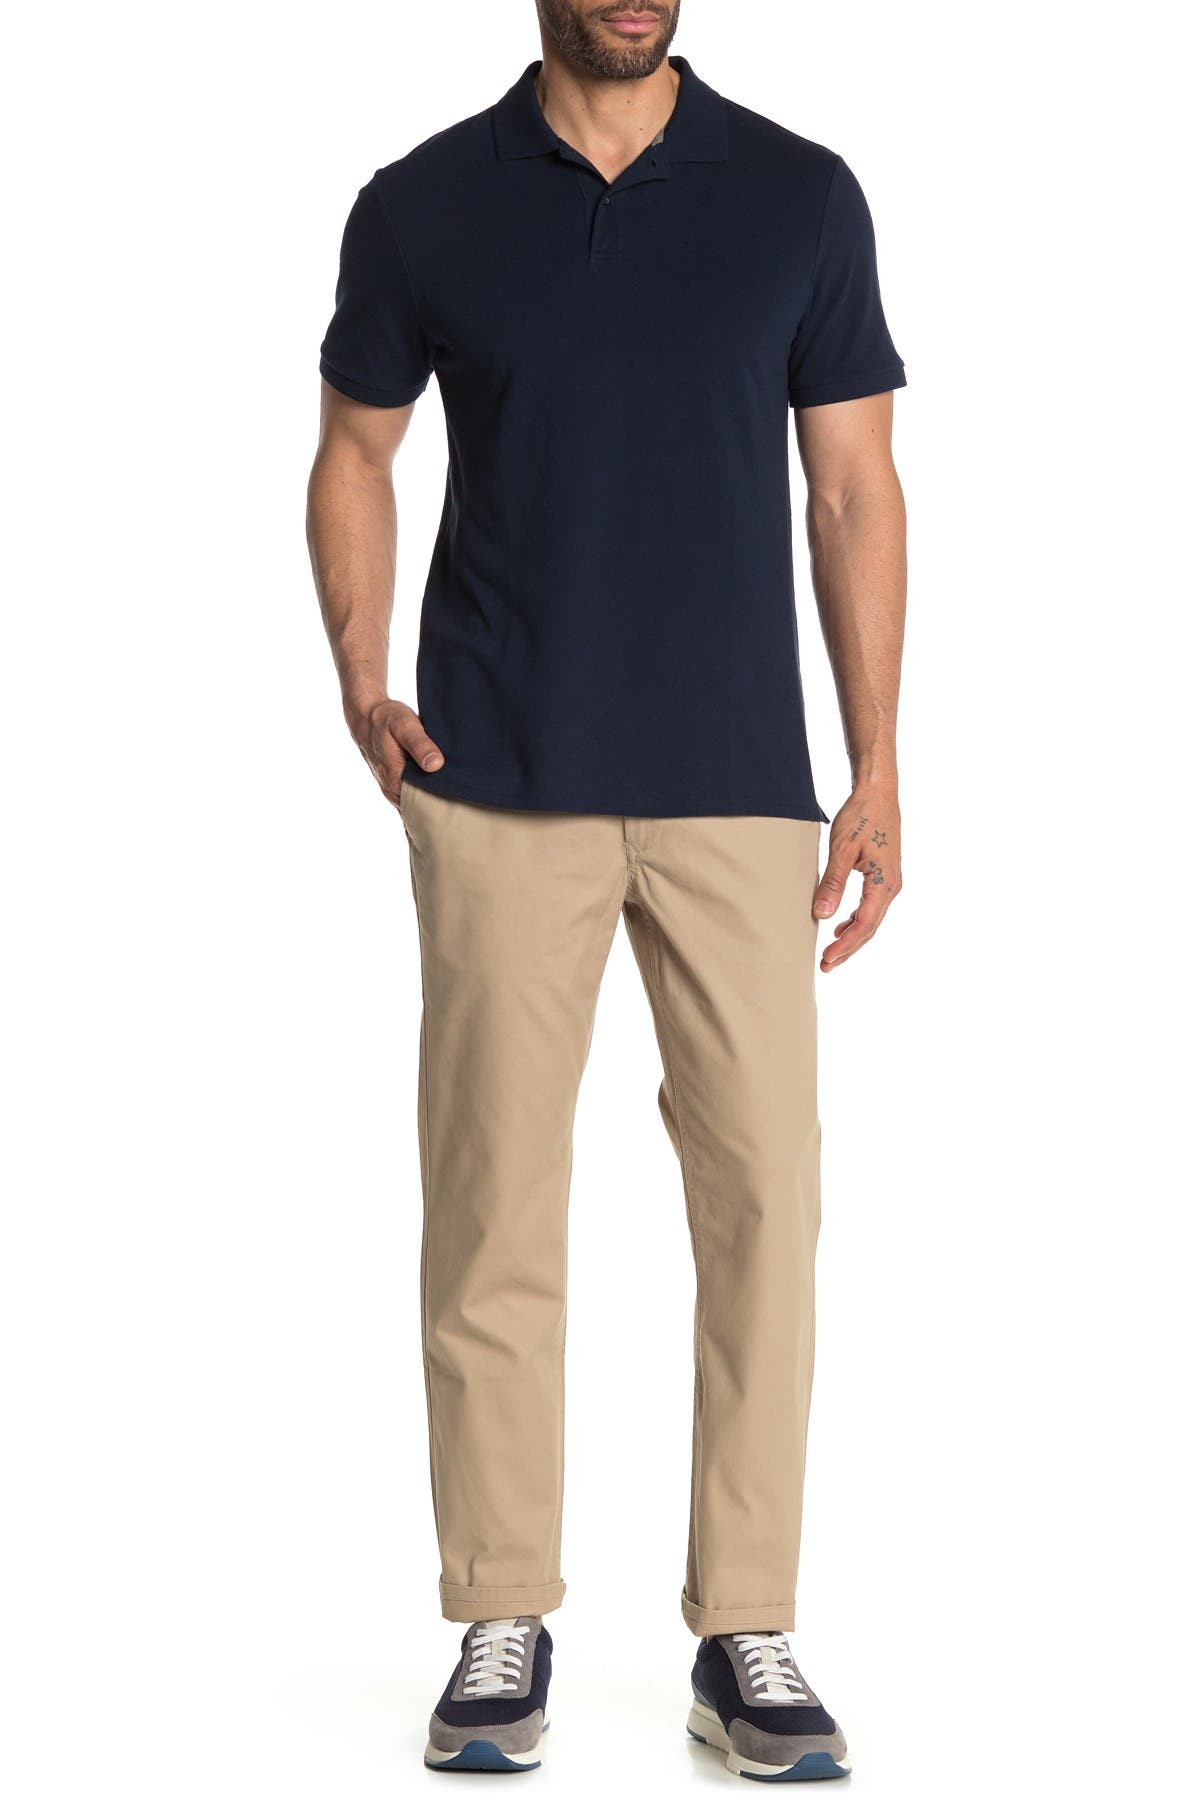 """Image of Bonobos Solid Washed Straight Chino Pants - 30-32"""" Inseam"""